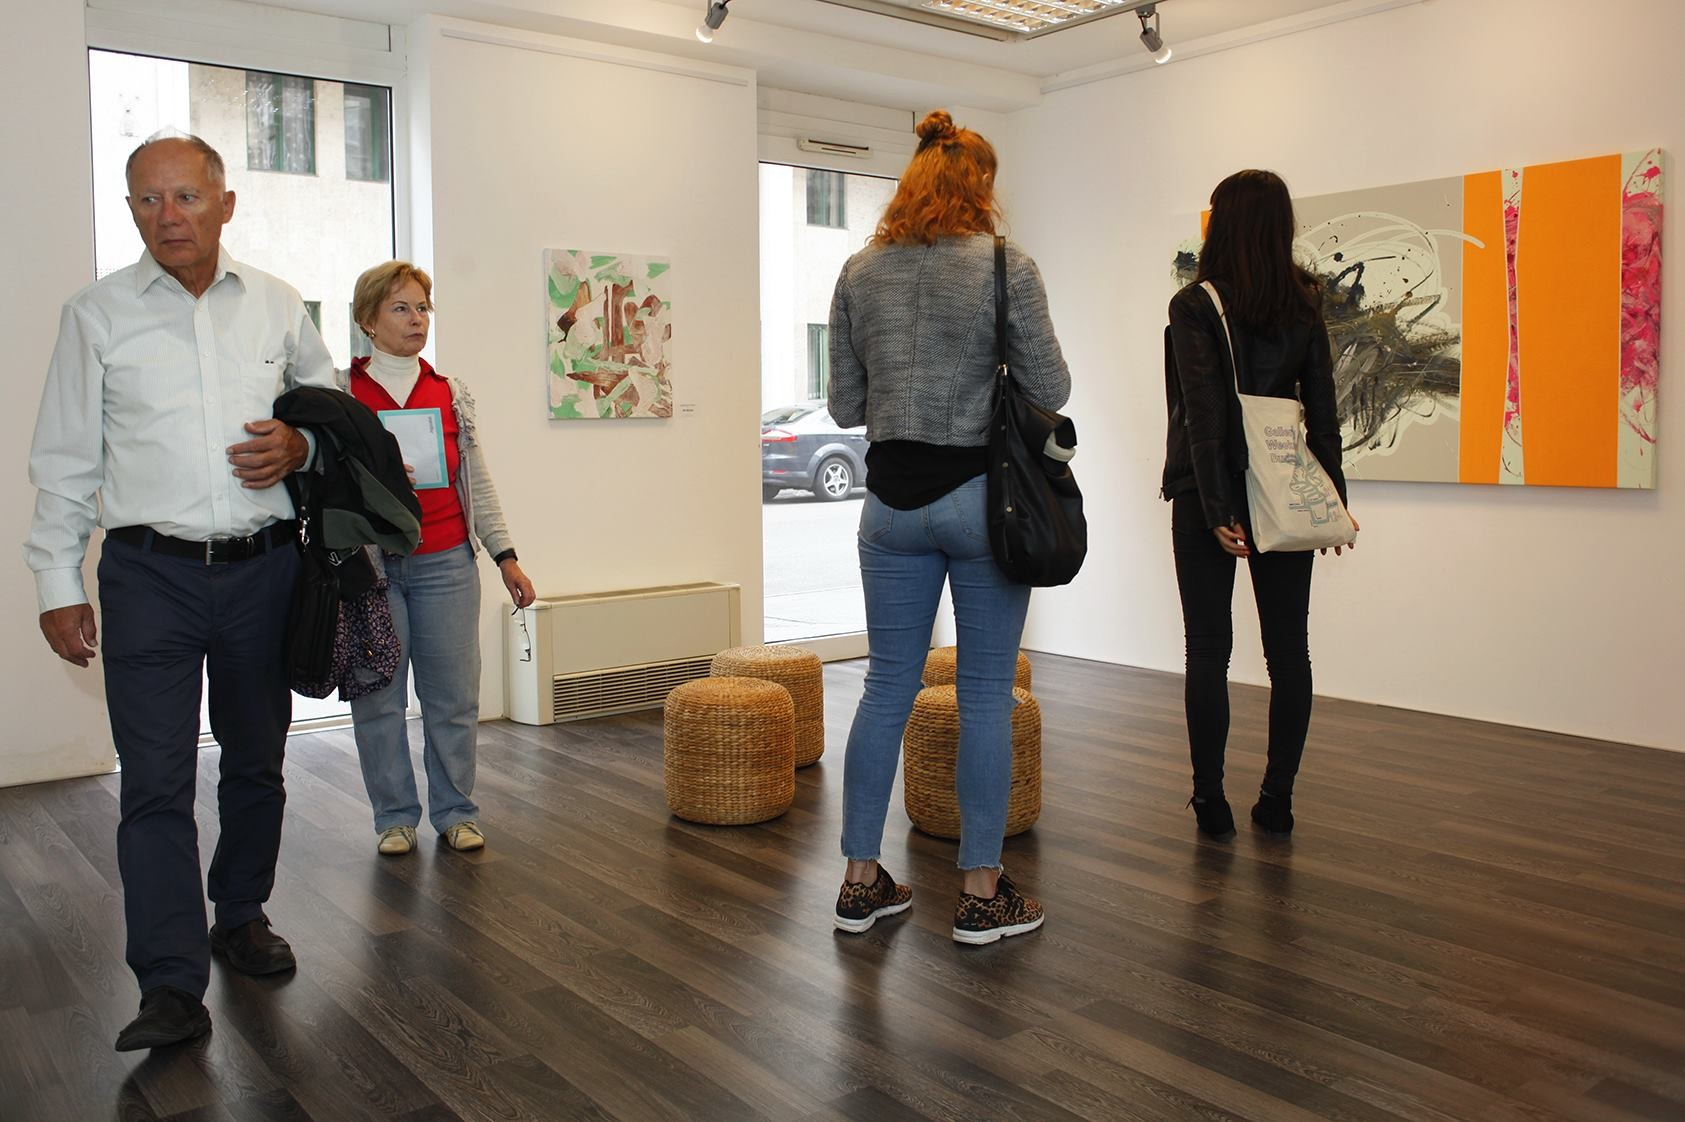 3BABSTRACTION 2015 Budapest / Flux Gallery